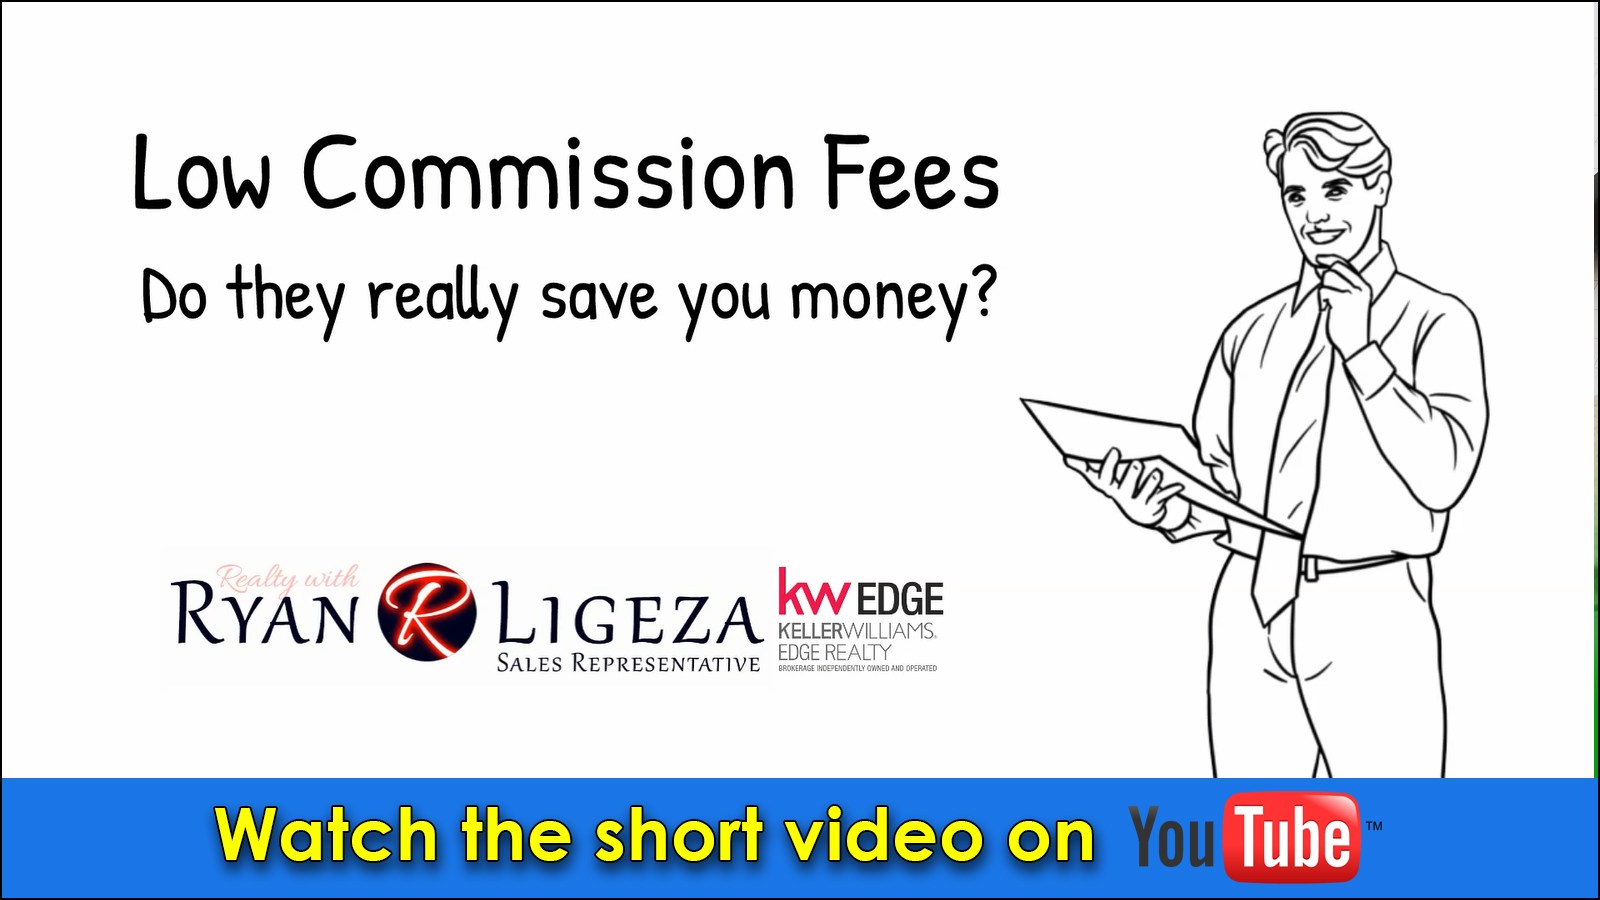 Low Commission Fees. Do they really save you money?